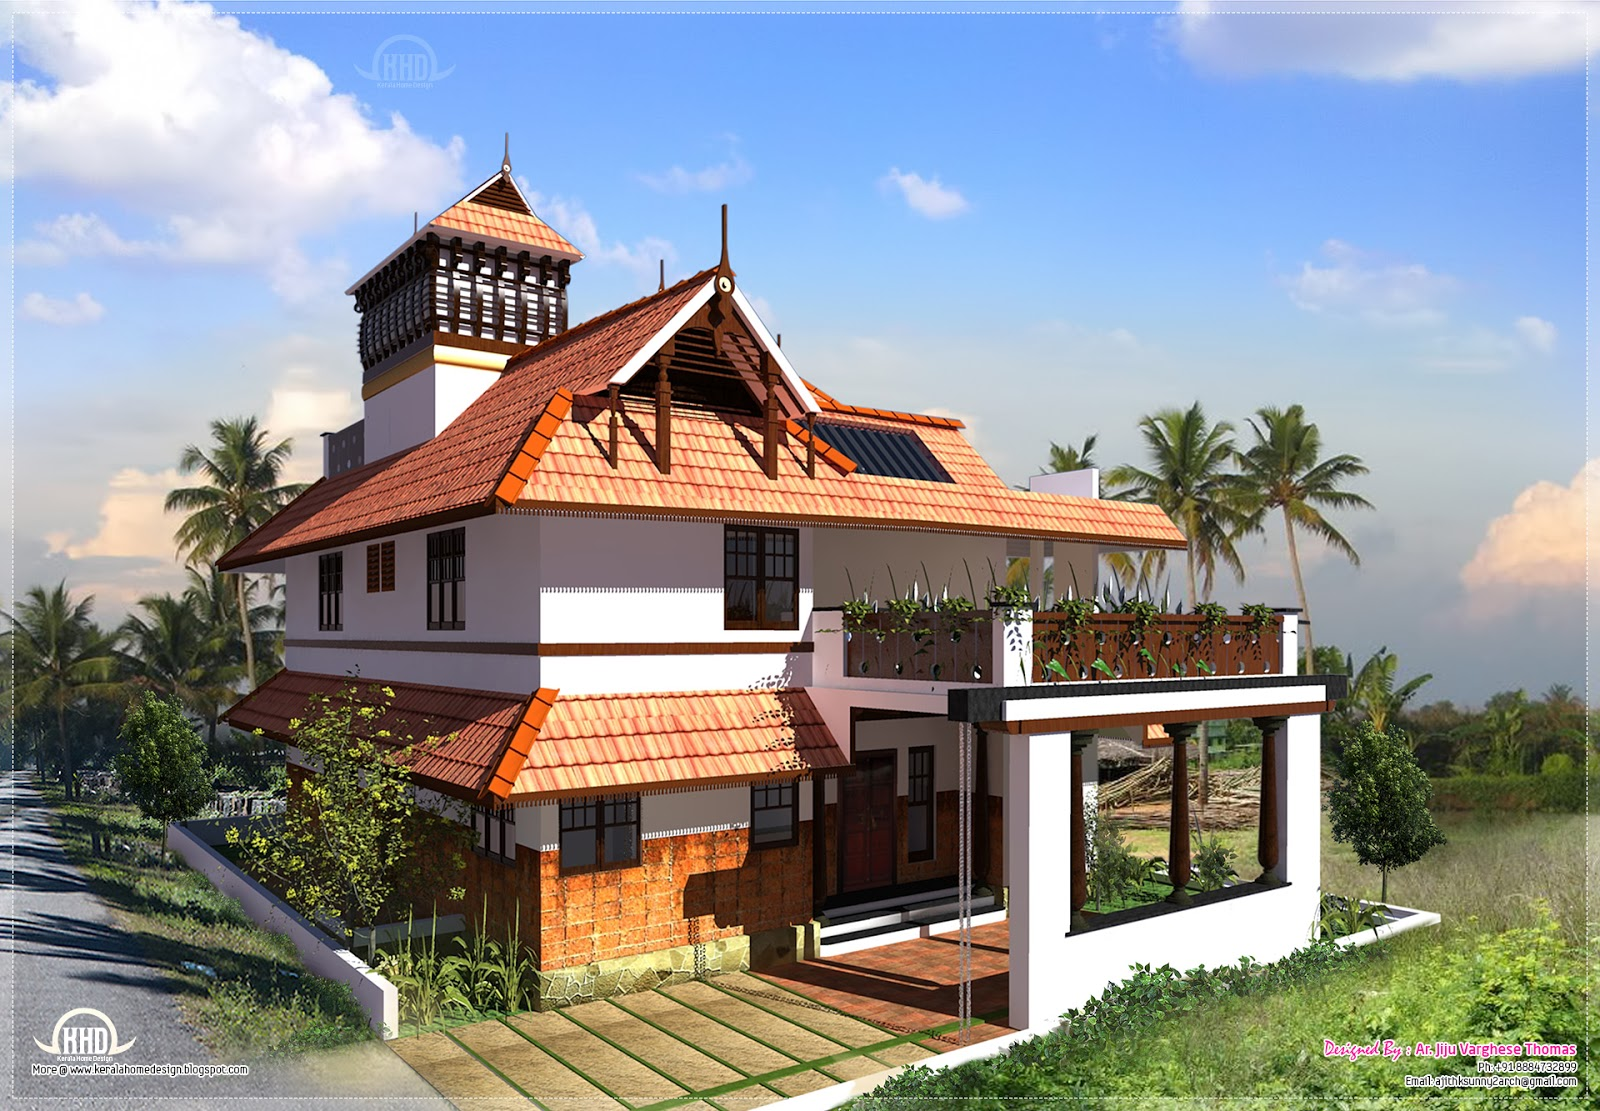 Kerala traditional house plans design joy studio design for Home designs traditional